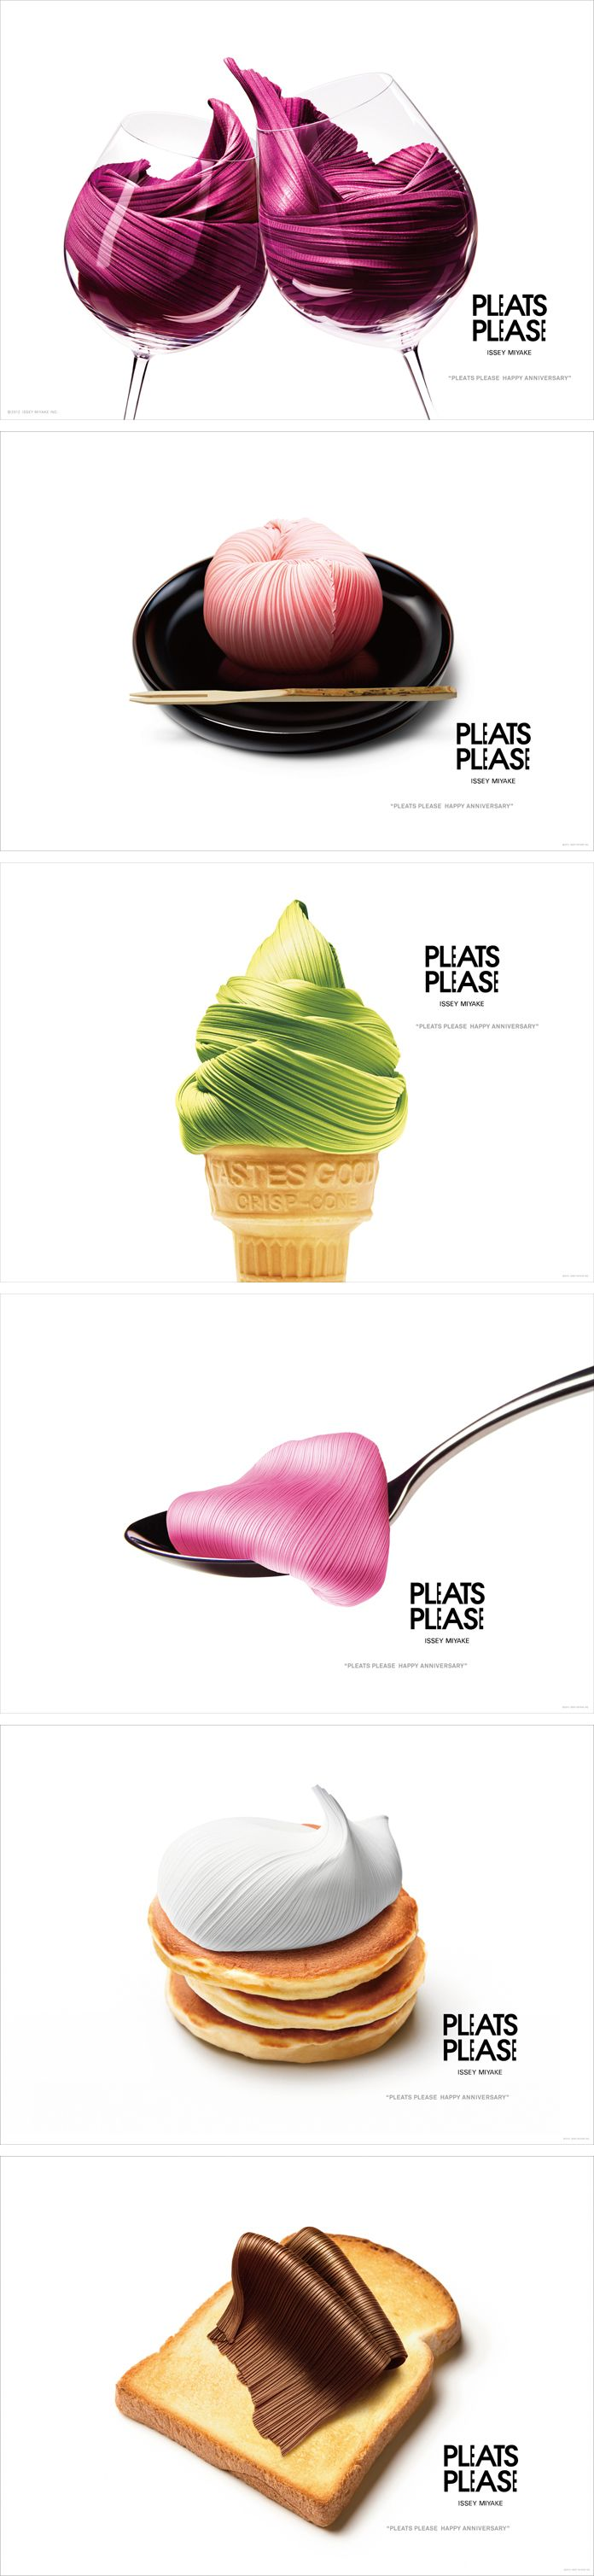 "Issey Miyake ""pleats please"" campaign"